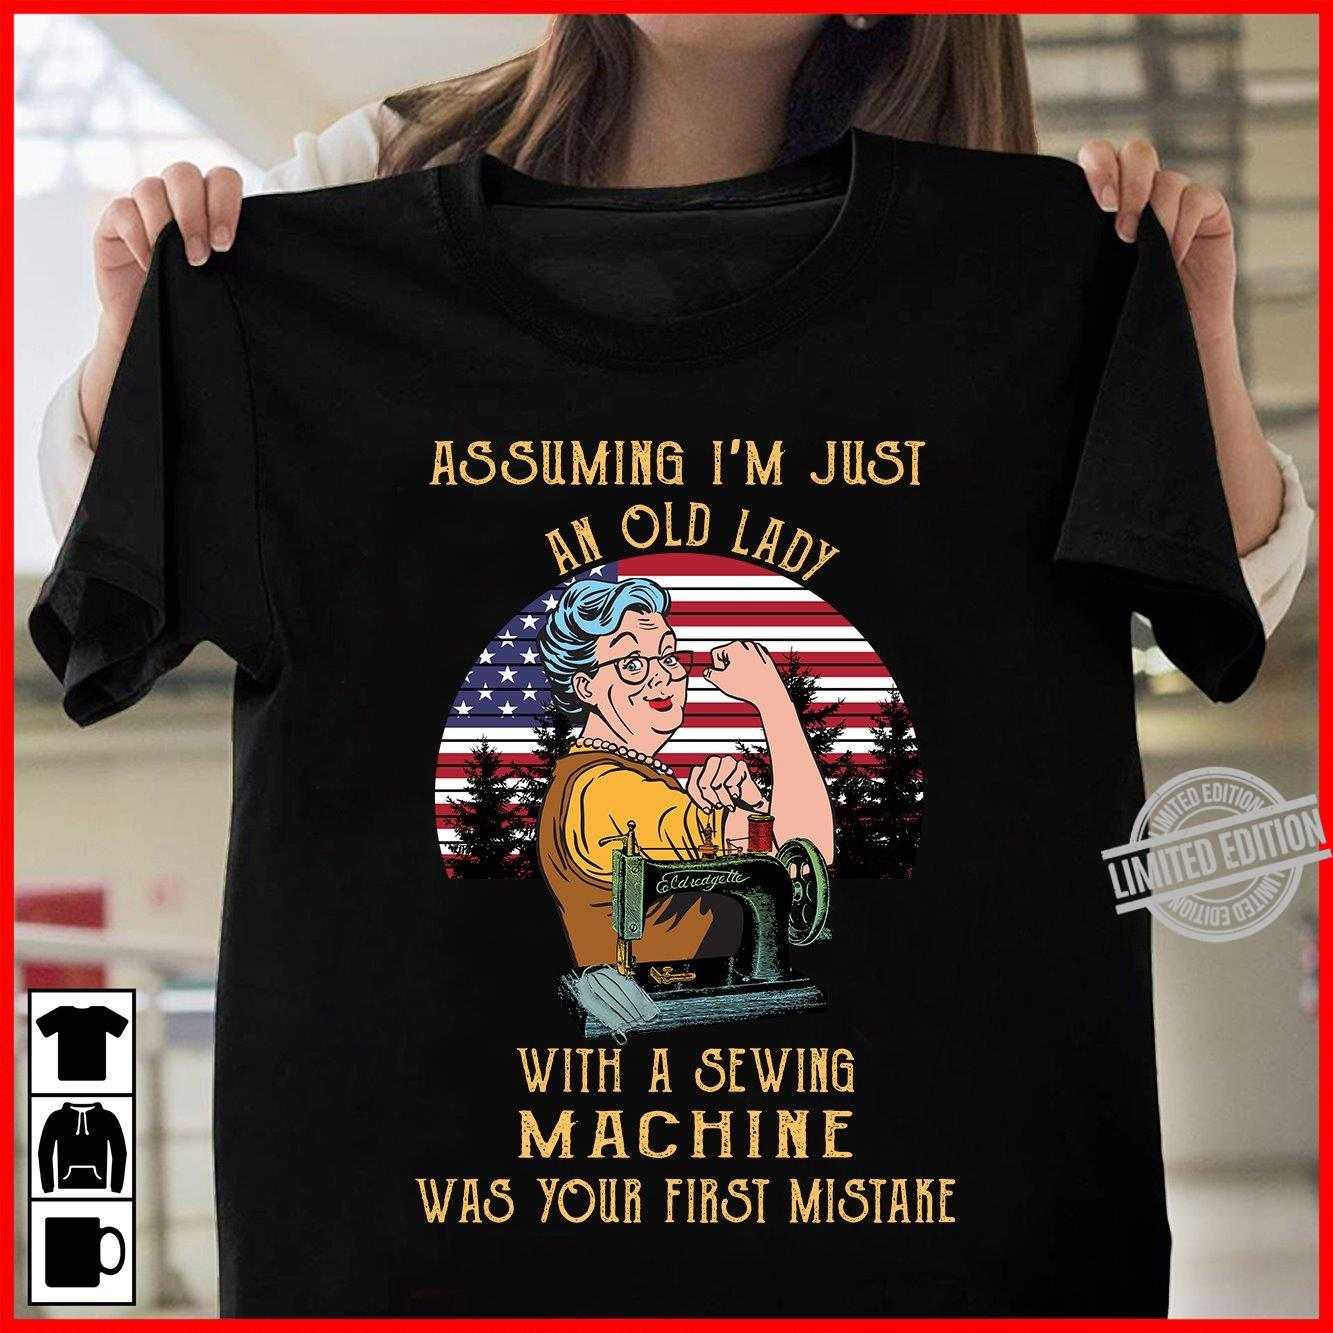 Assuming I'm Just An Old Lady With A Sewing Machine Was Your First Mistake Shirt